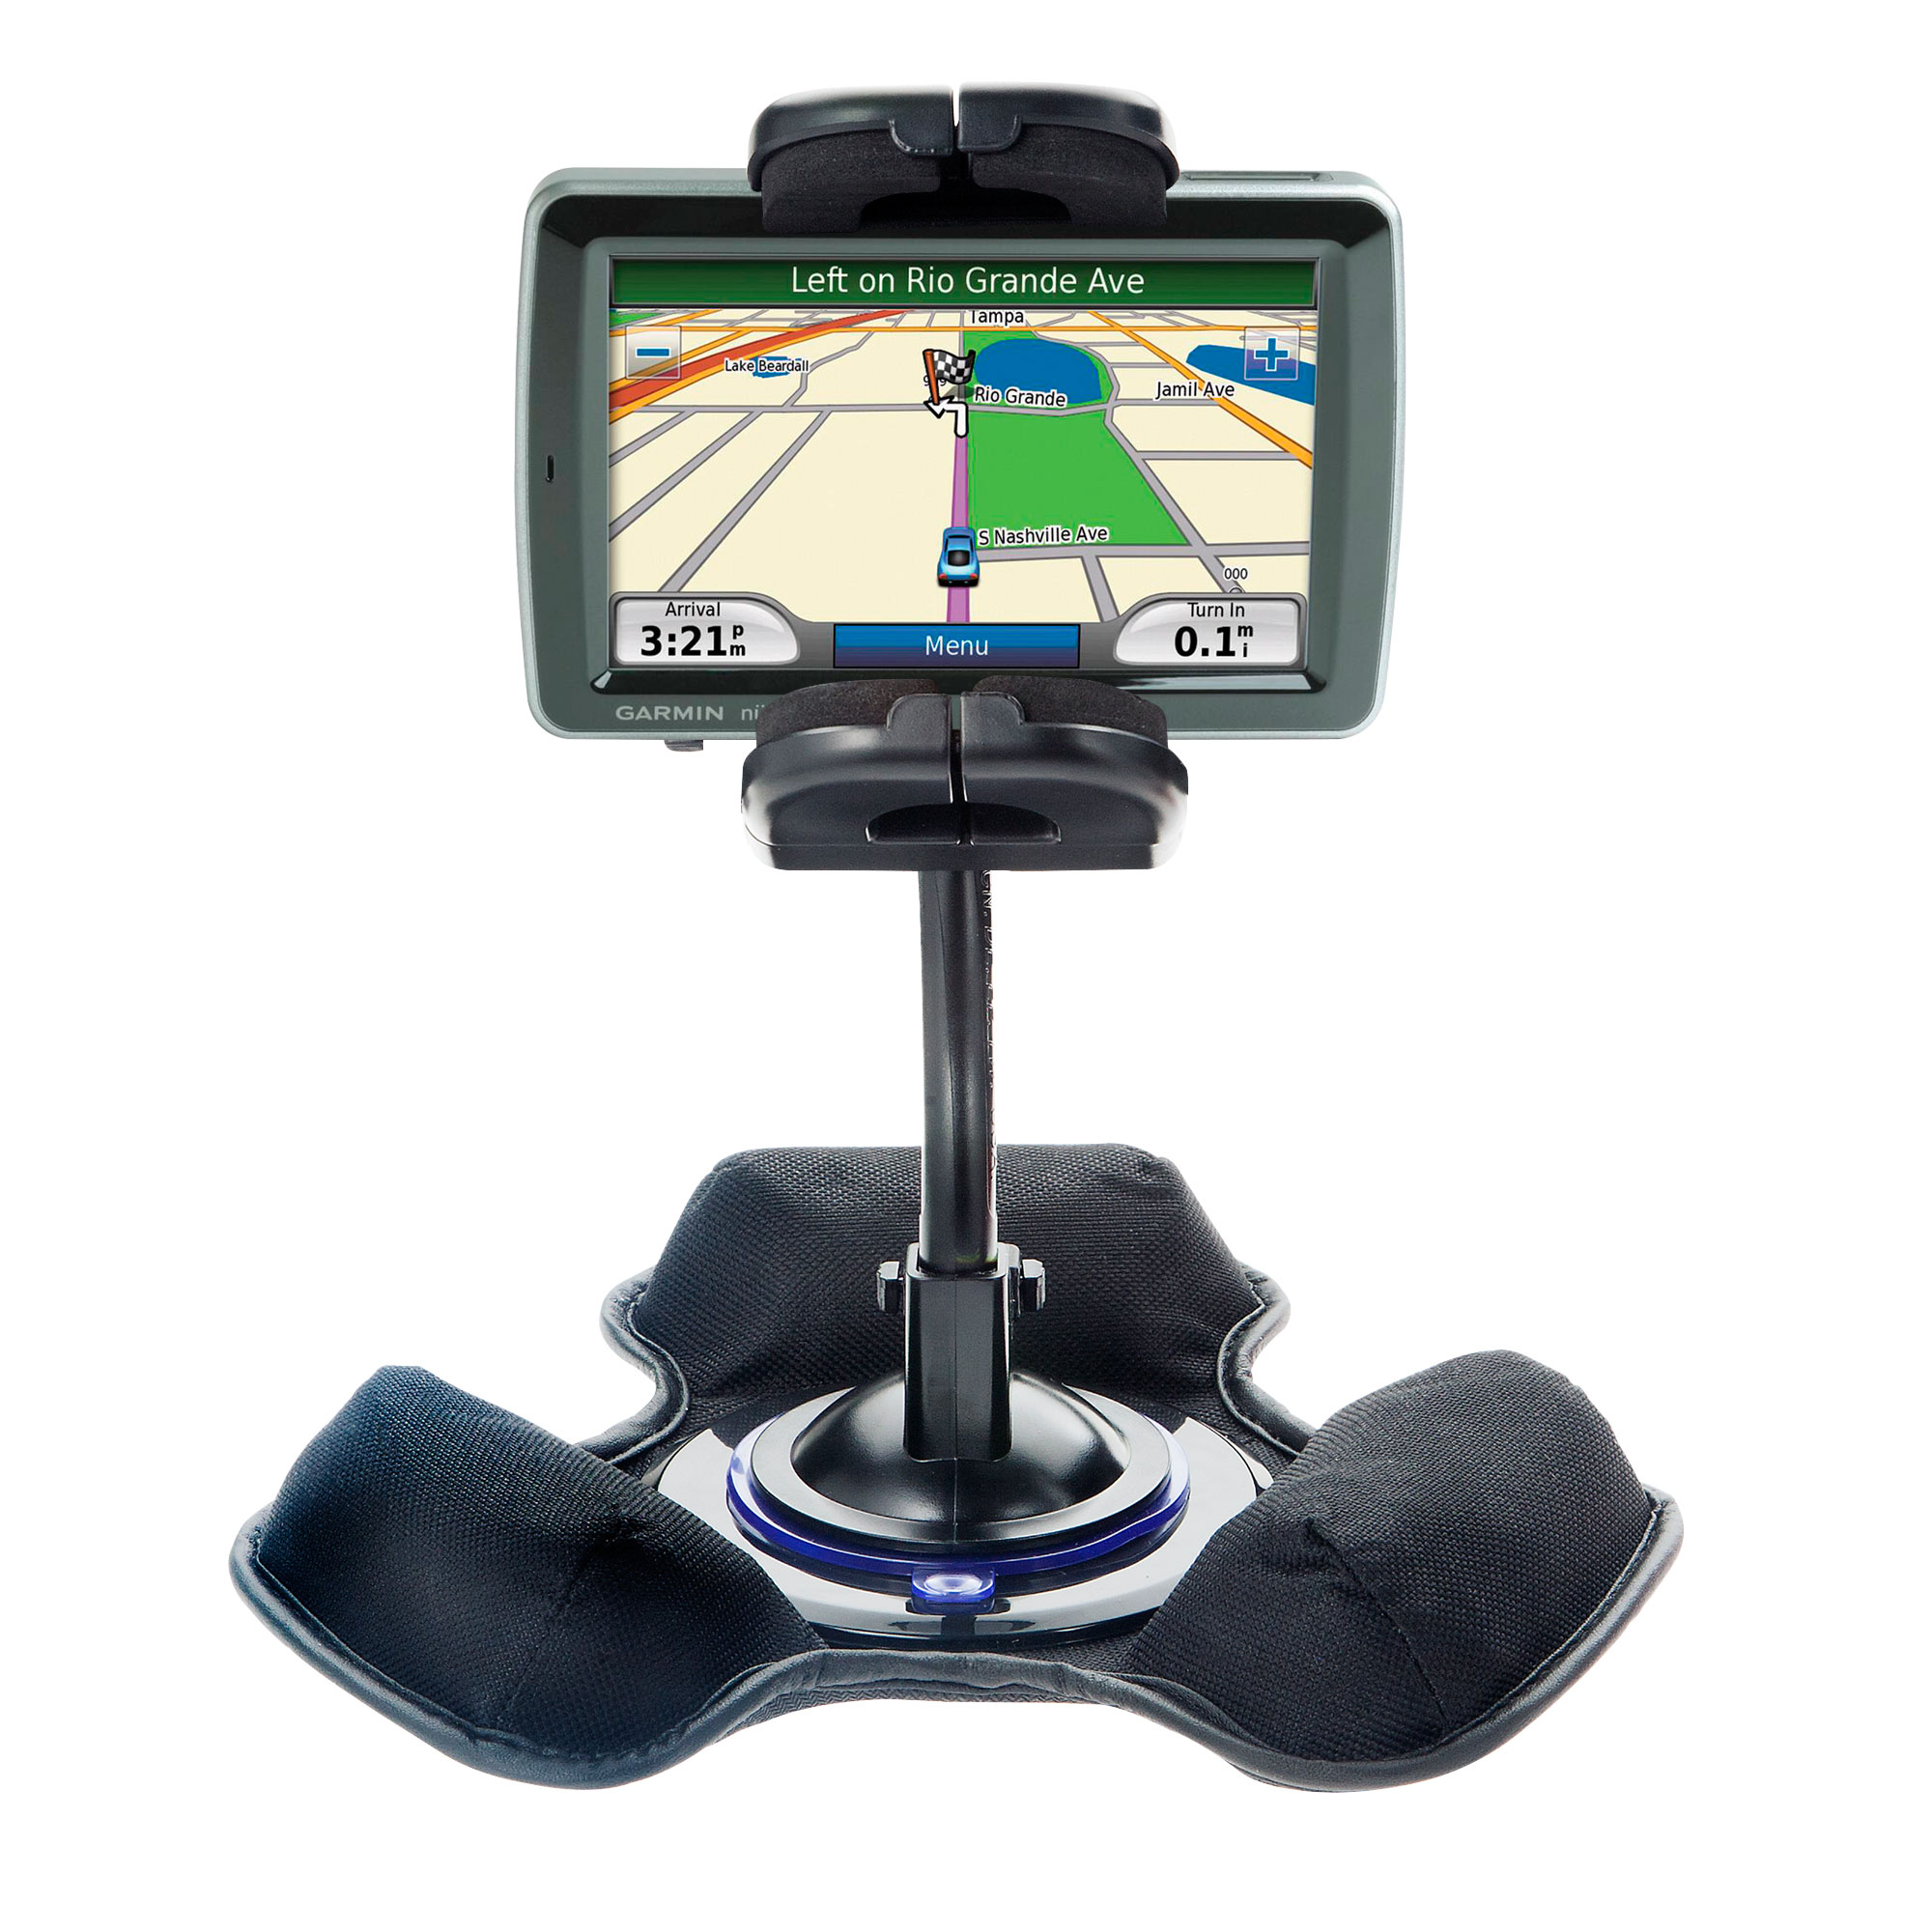 Dash and Windshield Holder compatible with the Garmin Nuvi 5000